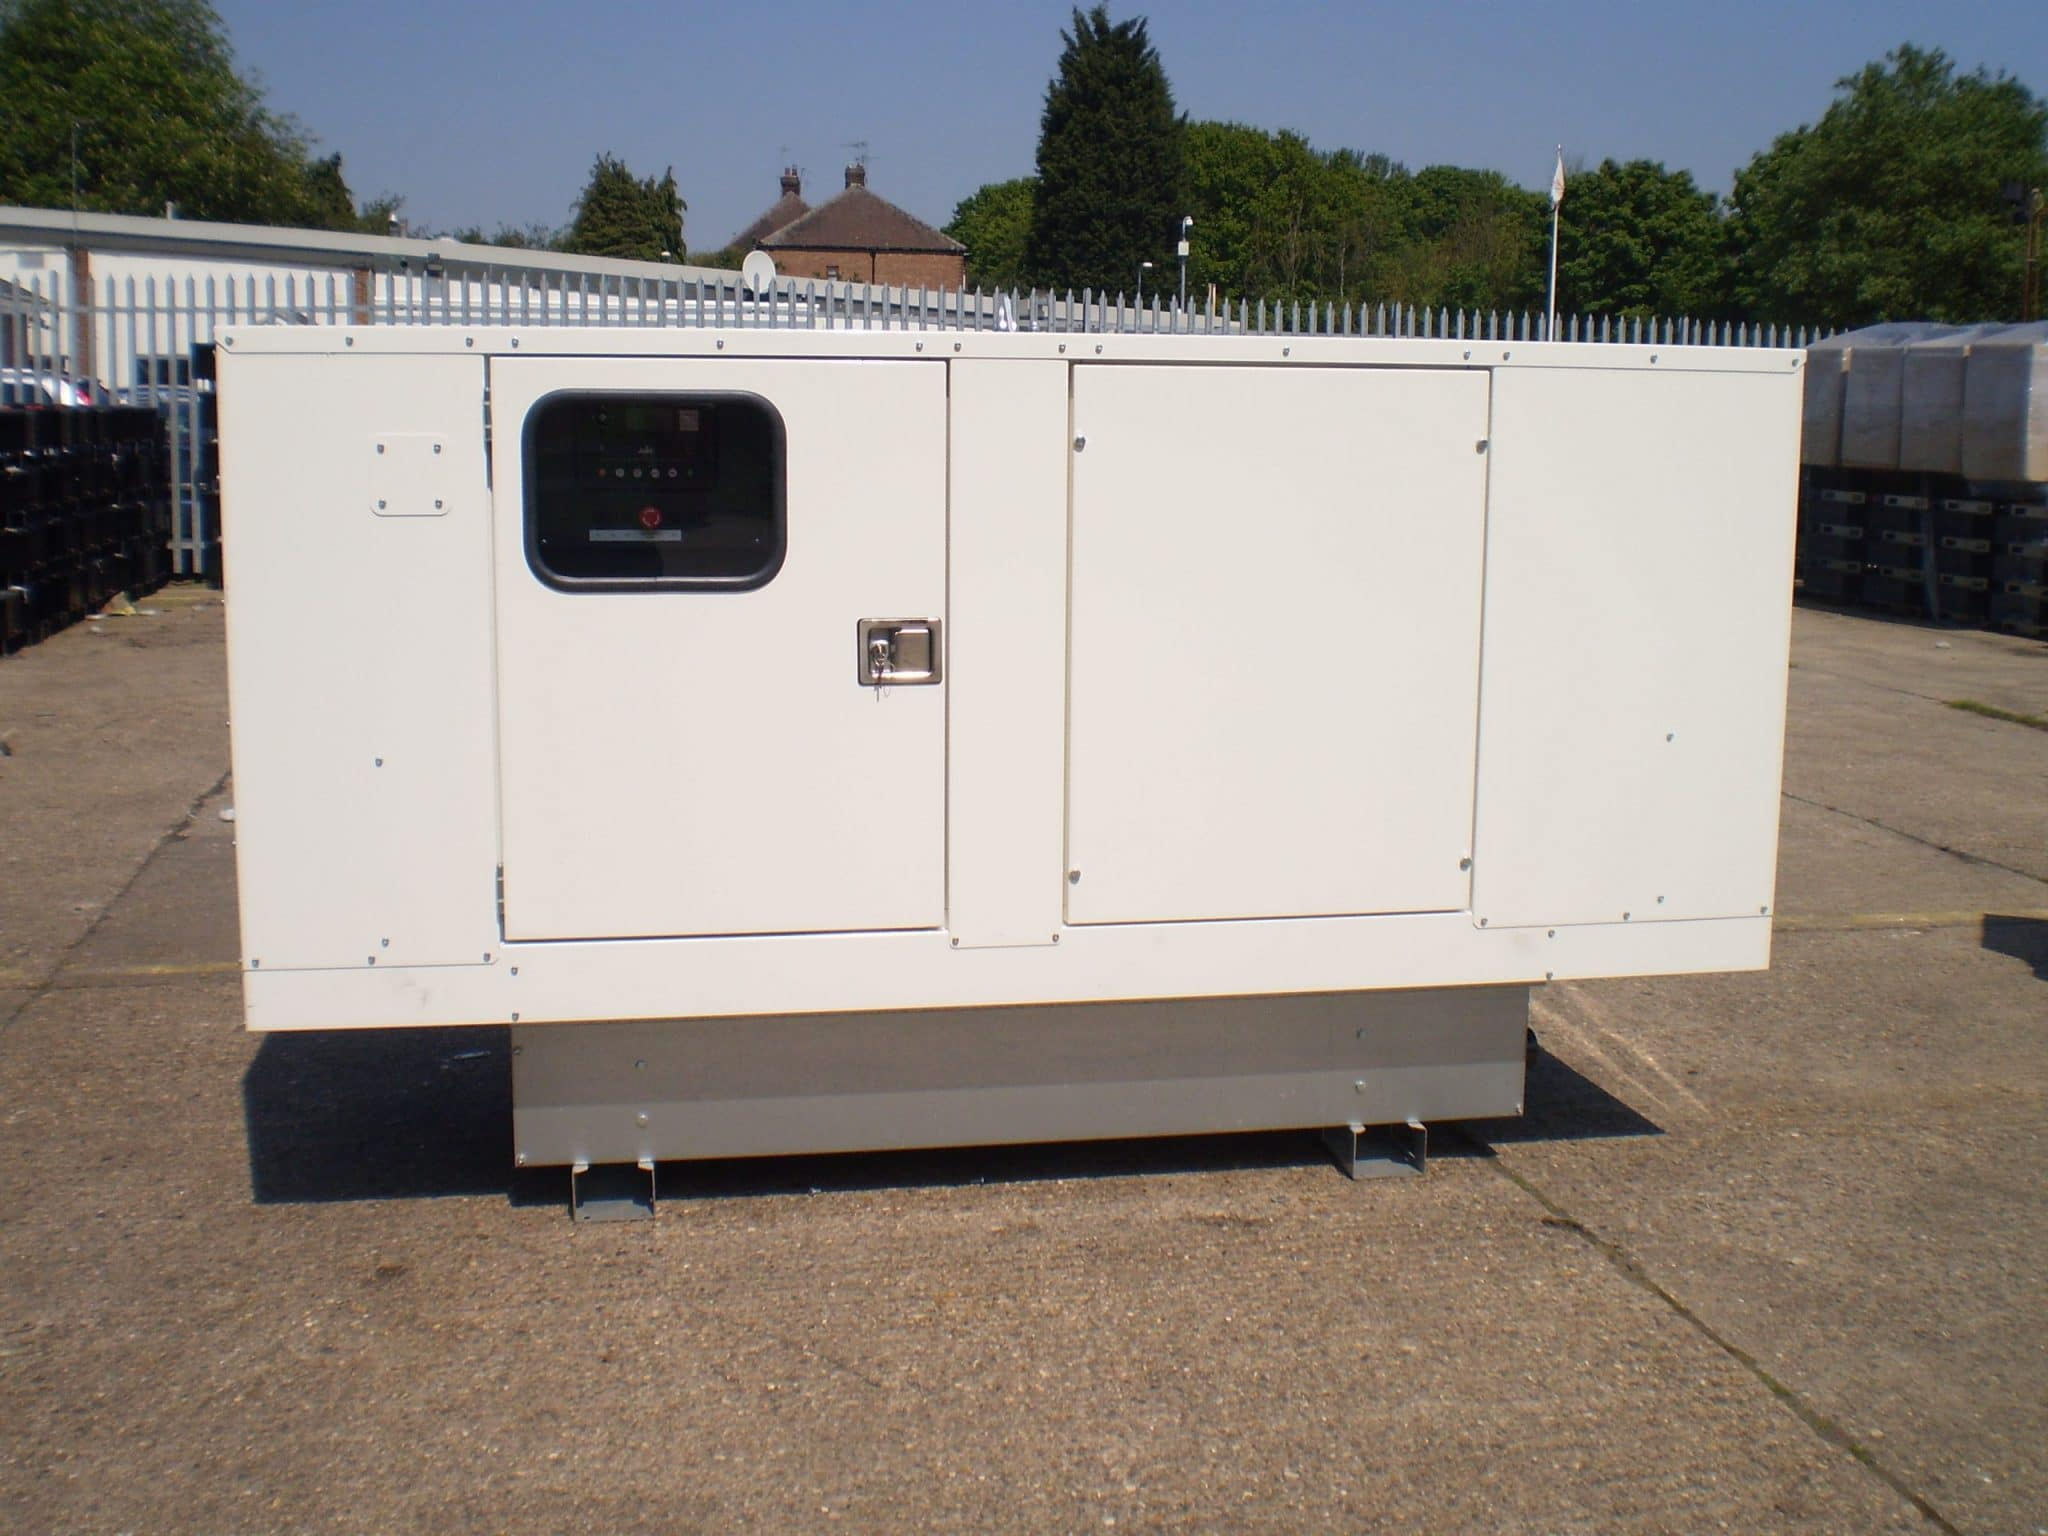 100 Kva Perkins Stamford Acoustic (Super Silent) Generator For Sale